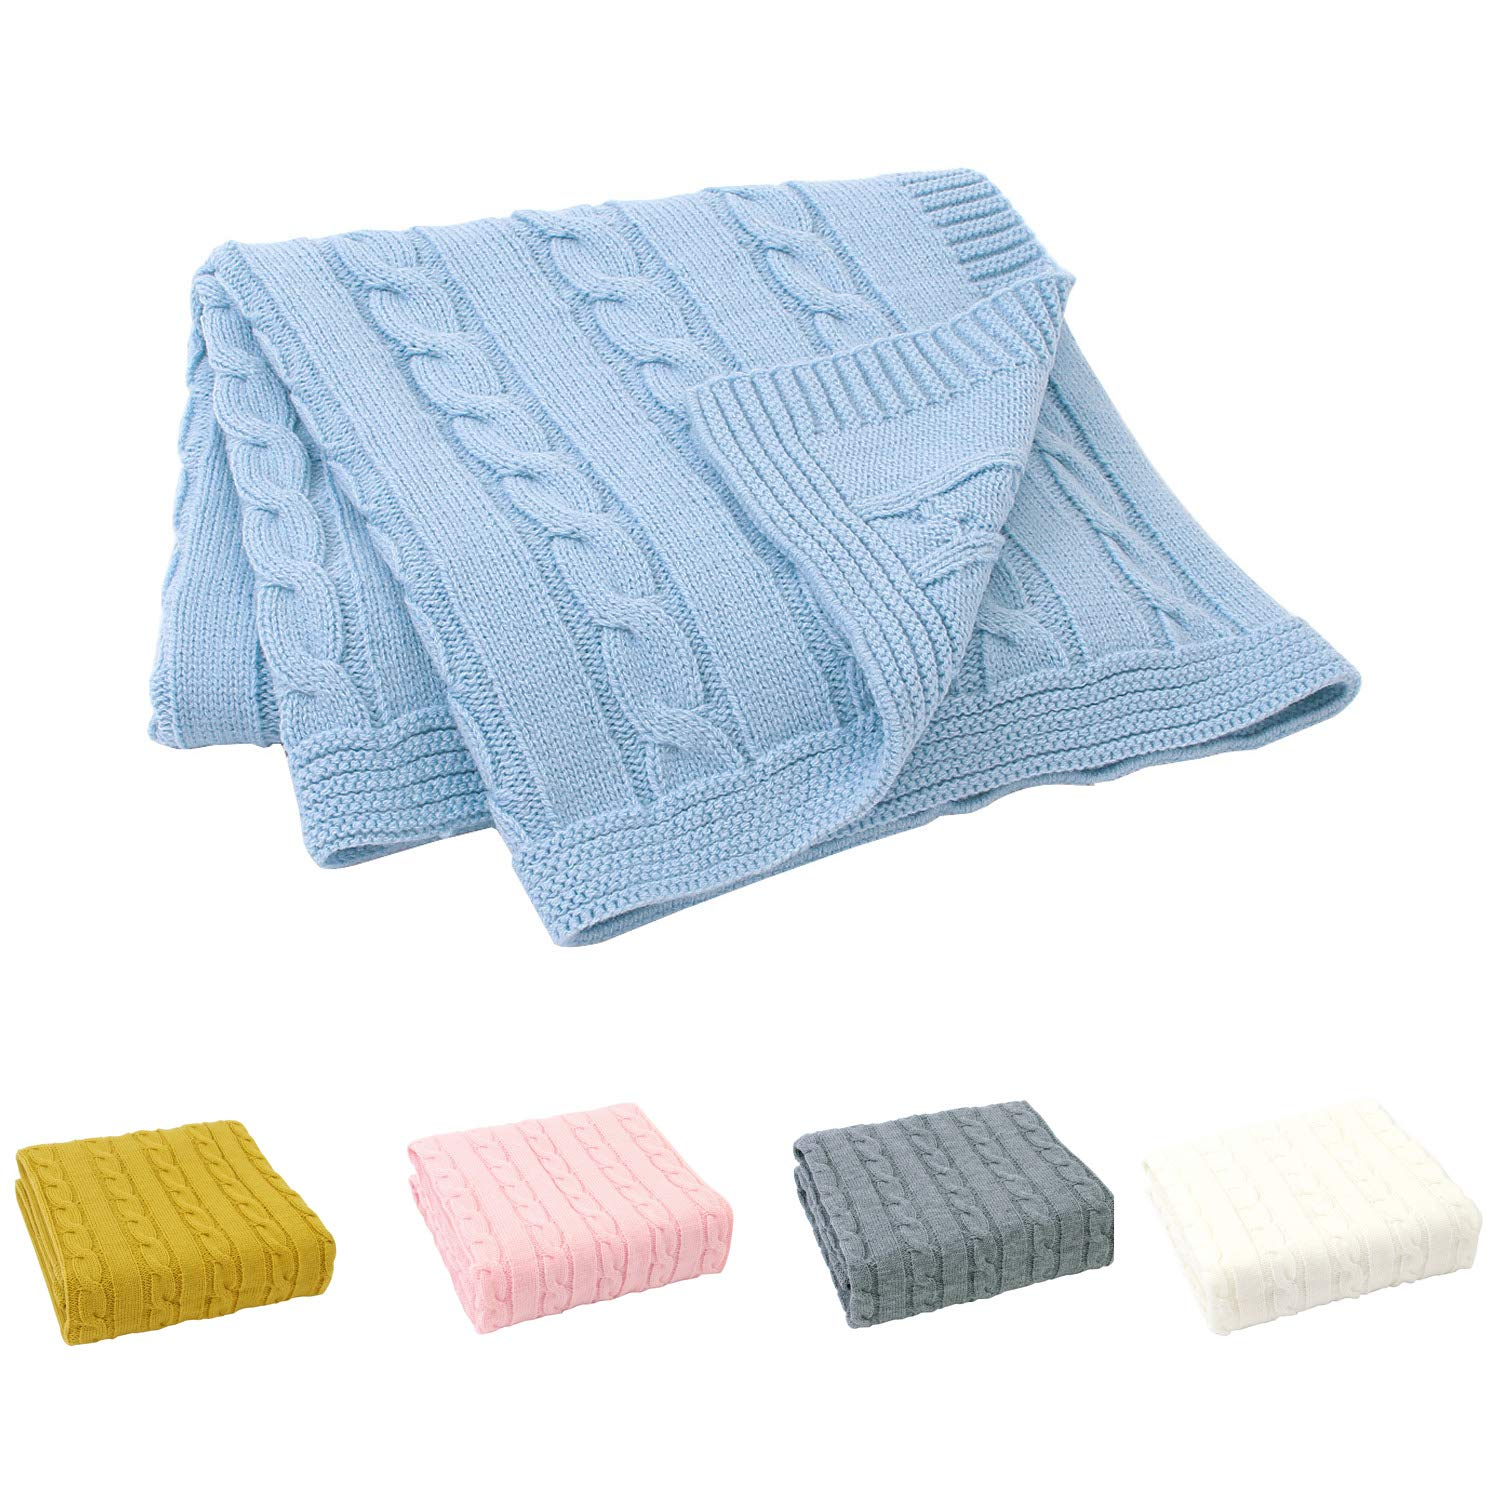 Sumery Su Baby Blanket Knit Soft Baby Toddler Blankets for Boy and Girls Size 30 x 40 Inch Blue